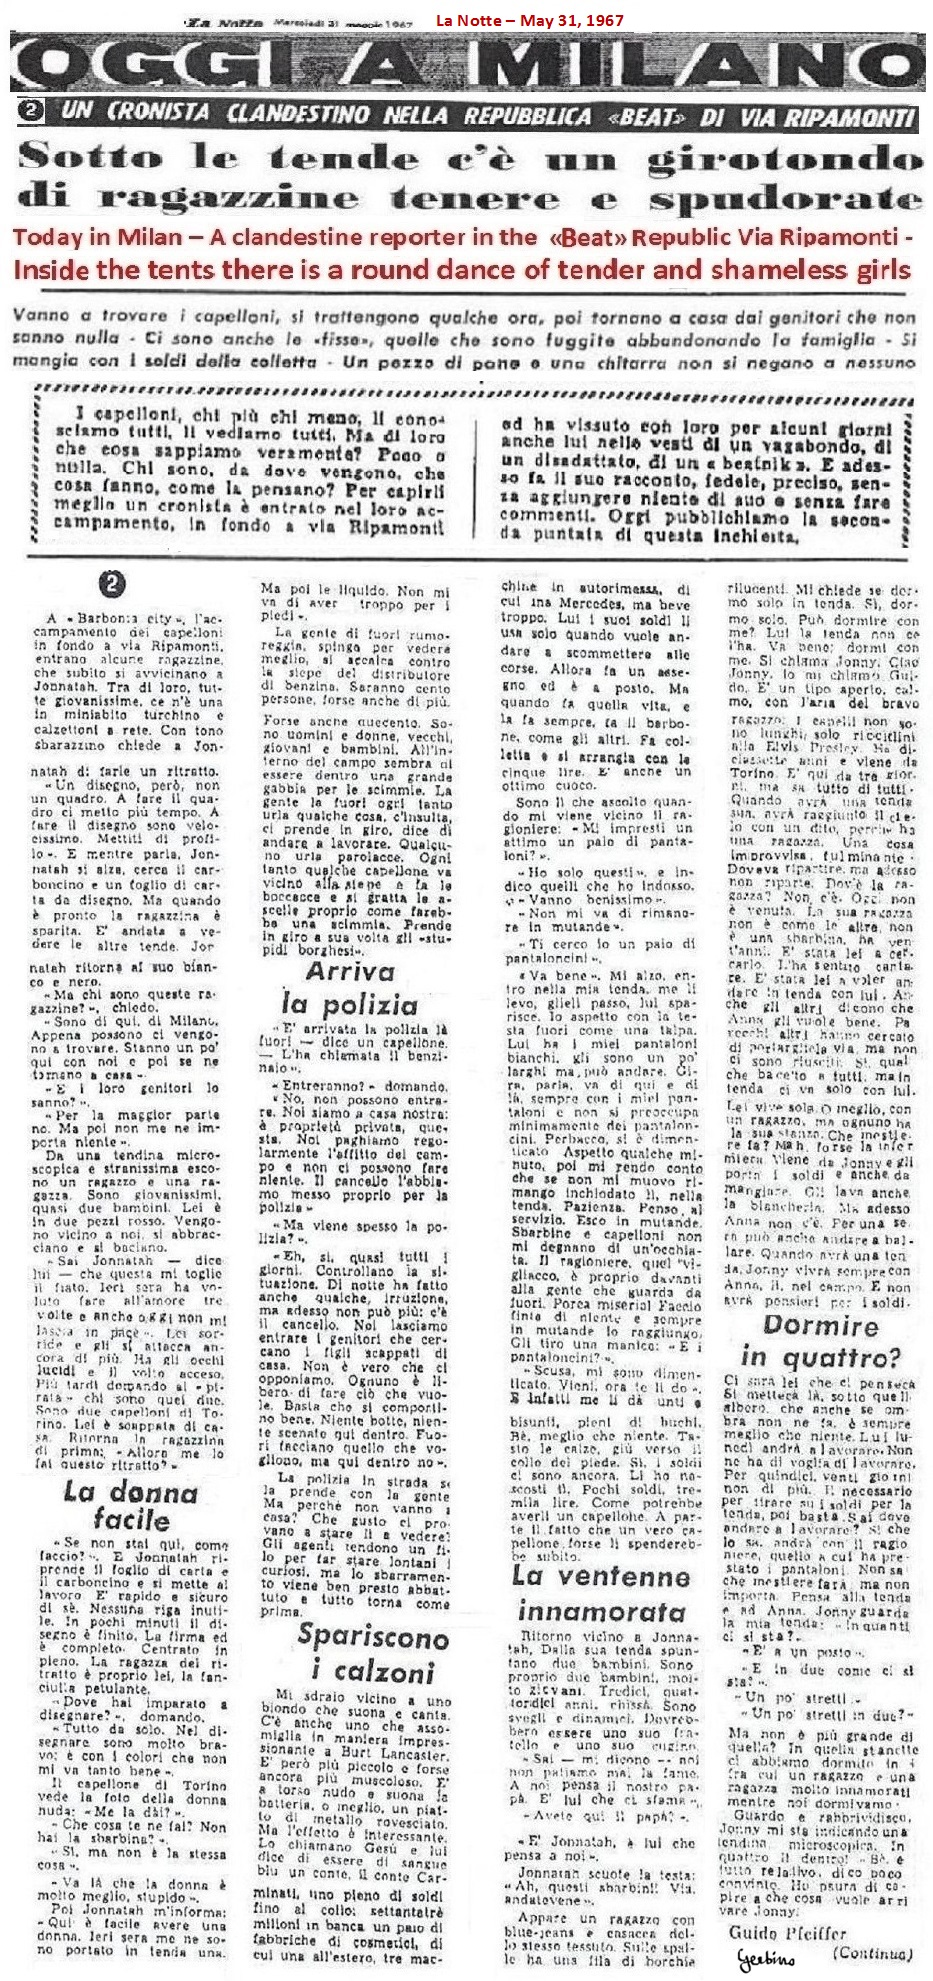 Second article by La Notte against the Mondo Beat Movement, May 31,1967